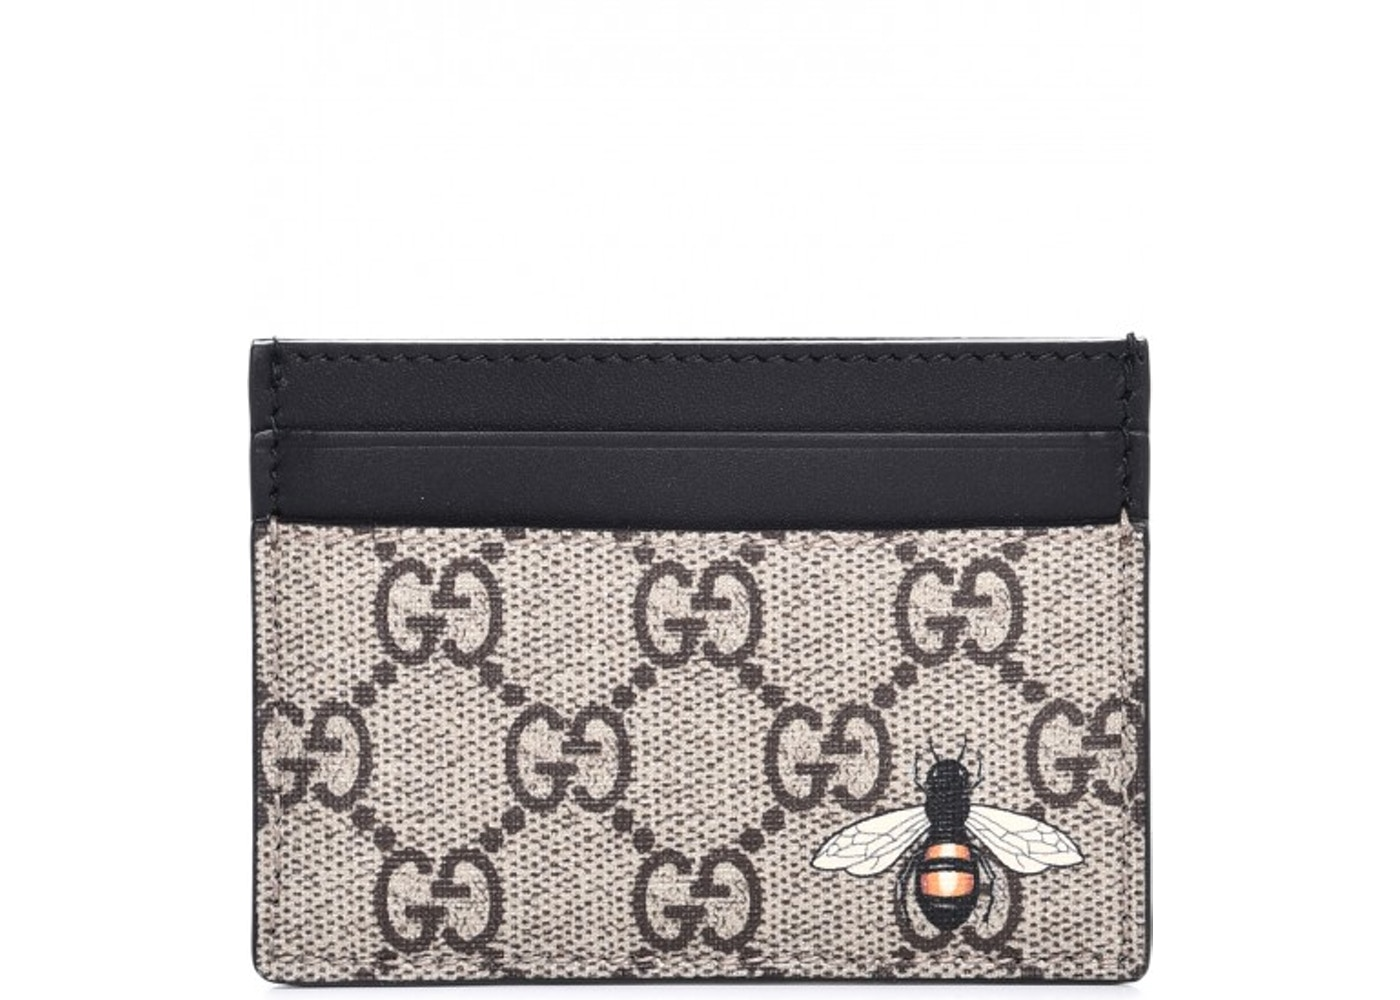 Gucci Card Case GG Supreme Bee Print Black Beige. GG Supreme Bee Print Black  Beige 2a8d6d3f309